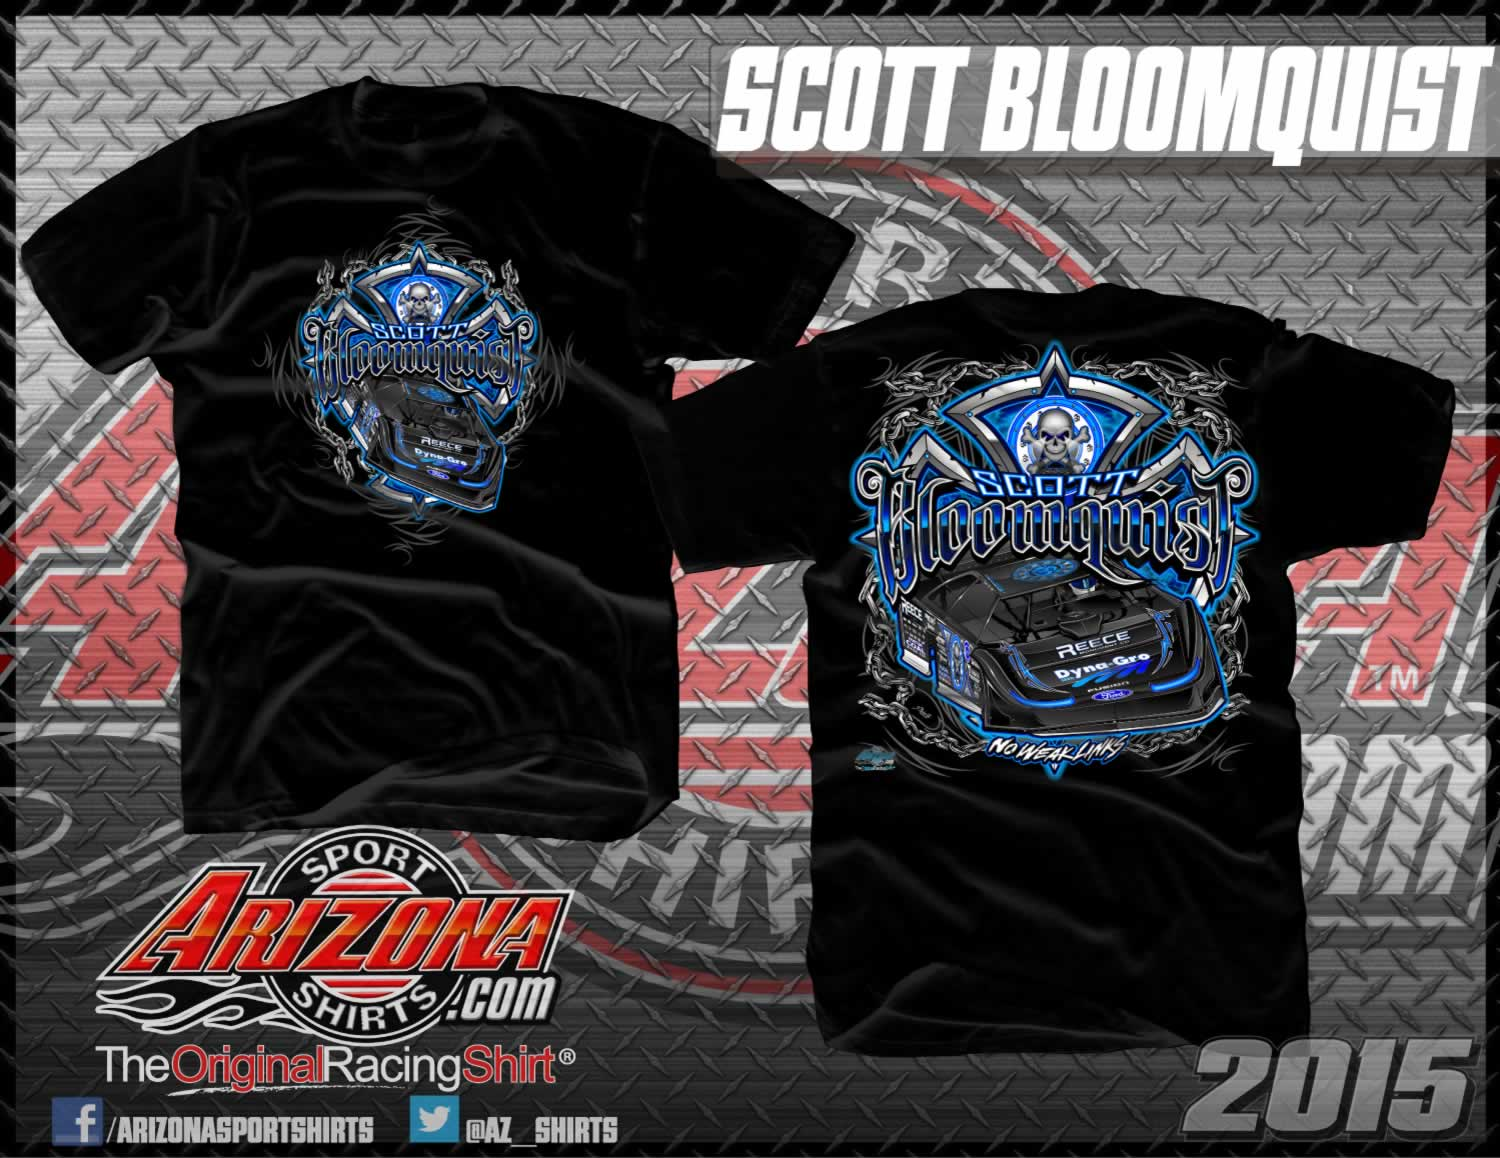 scott-bloomquist-15-2proof